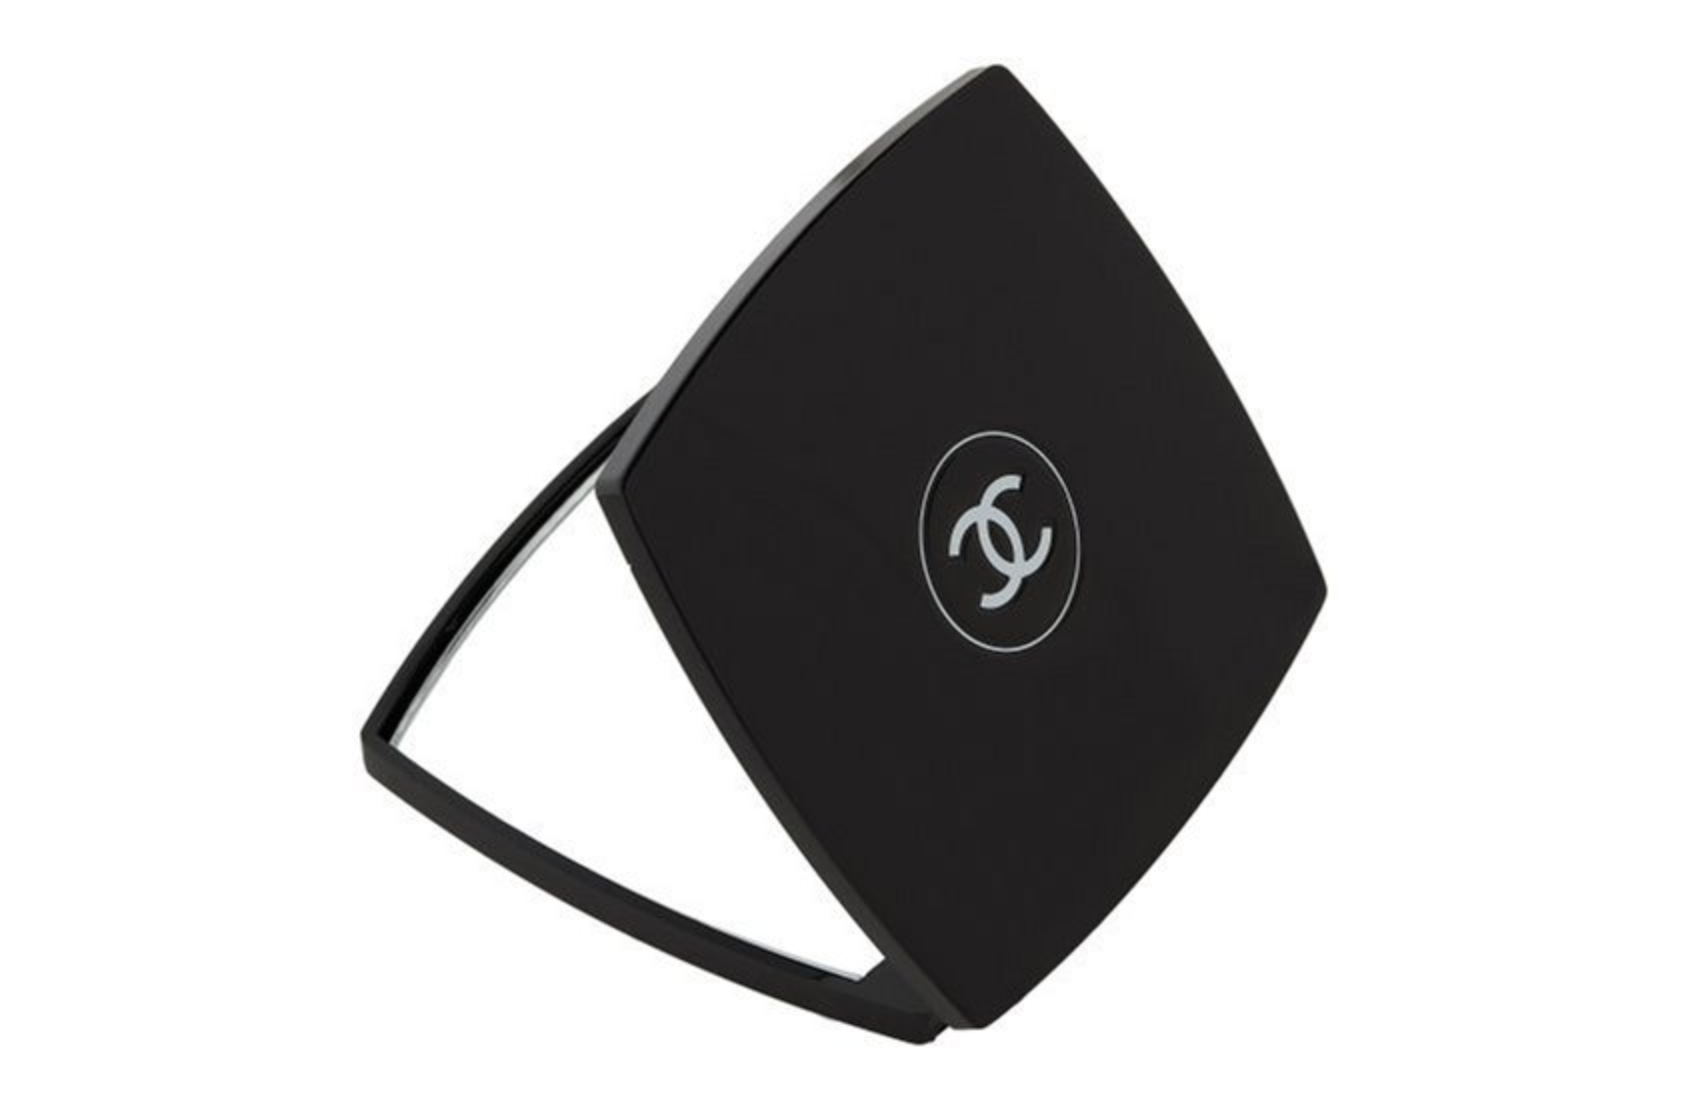 Chanel Compact Mirror - A sleek and beautiful addition to anyone's makeup counter or handbag.